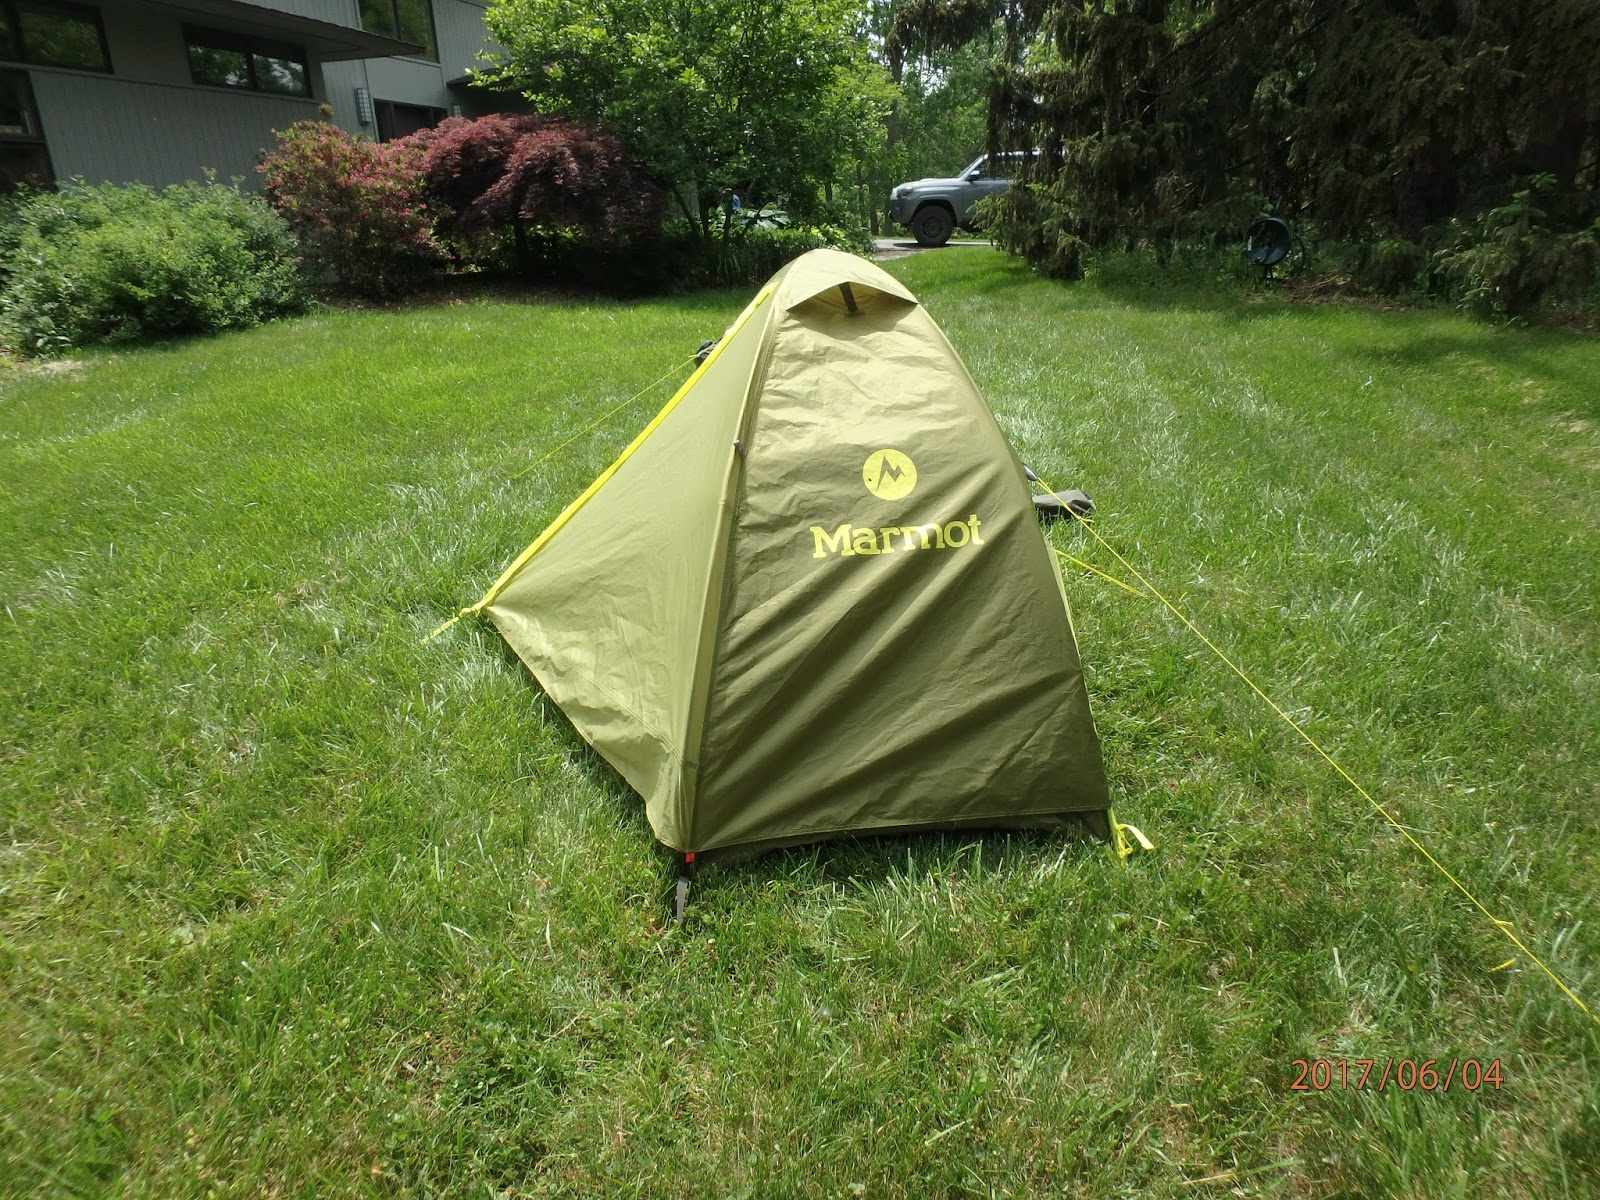 The tent opens on the right and the vestibule is the part extending as a beak. : marmot 1p tent - afamca.org